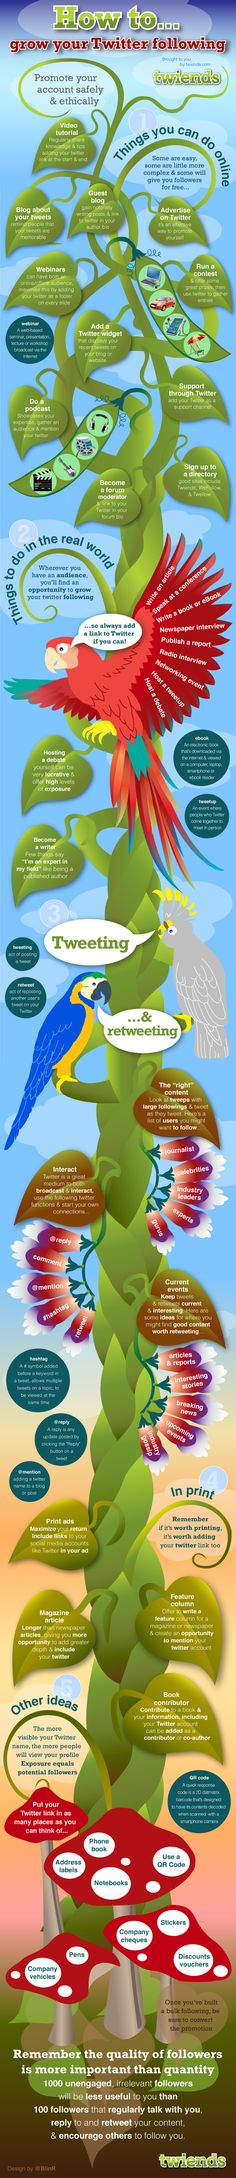 How To Grow (and Use) Your Twitter Audience Following #infographic